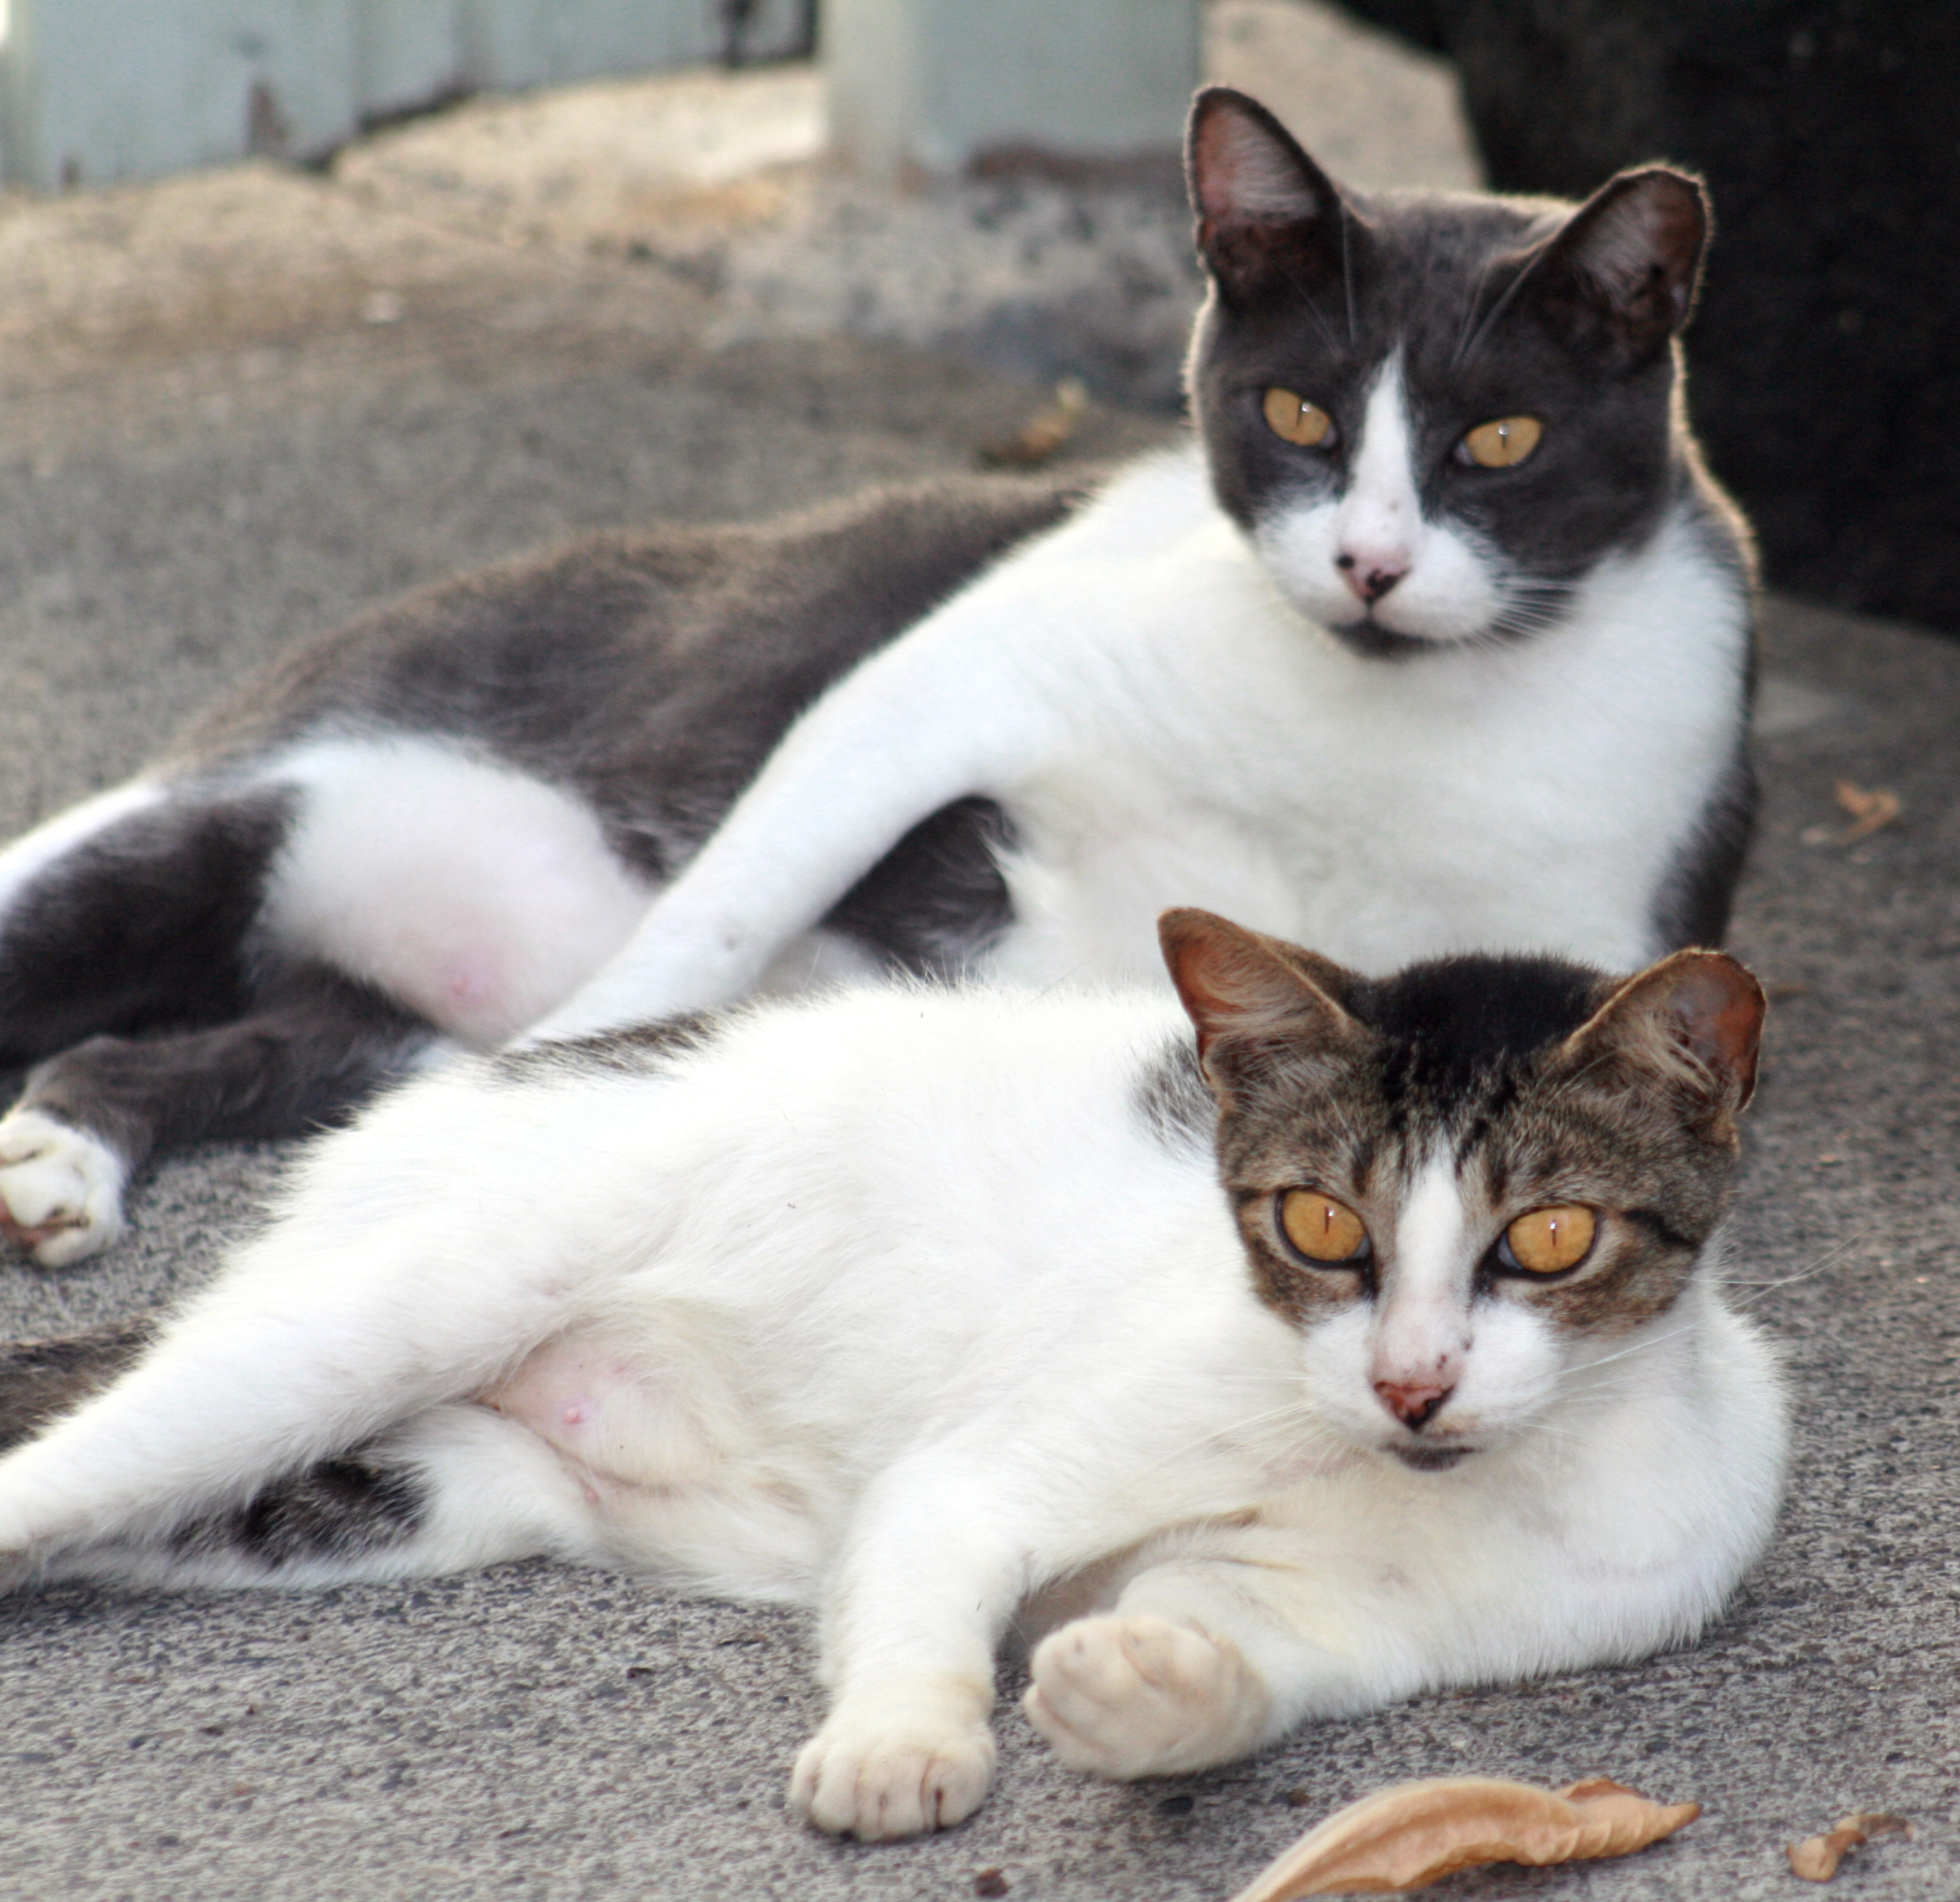 File:Feral cats.JPG - Wikipedia, the free encyclopedia